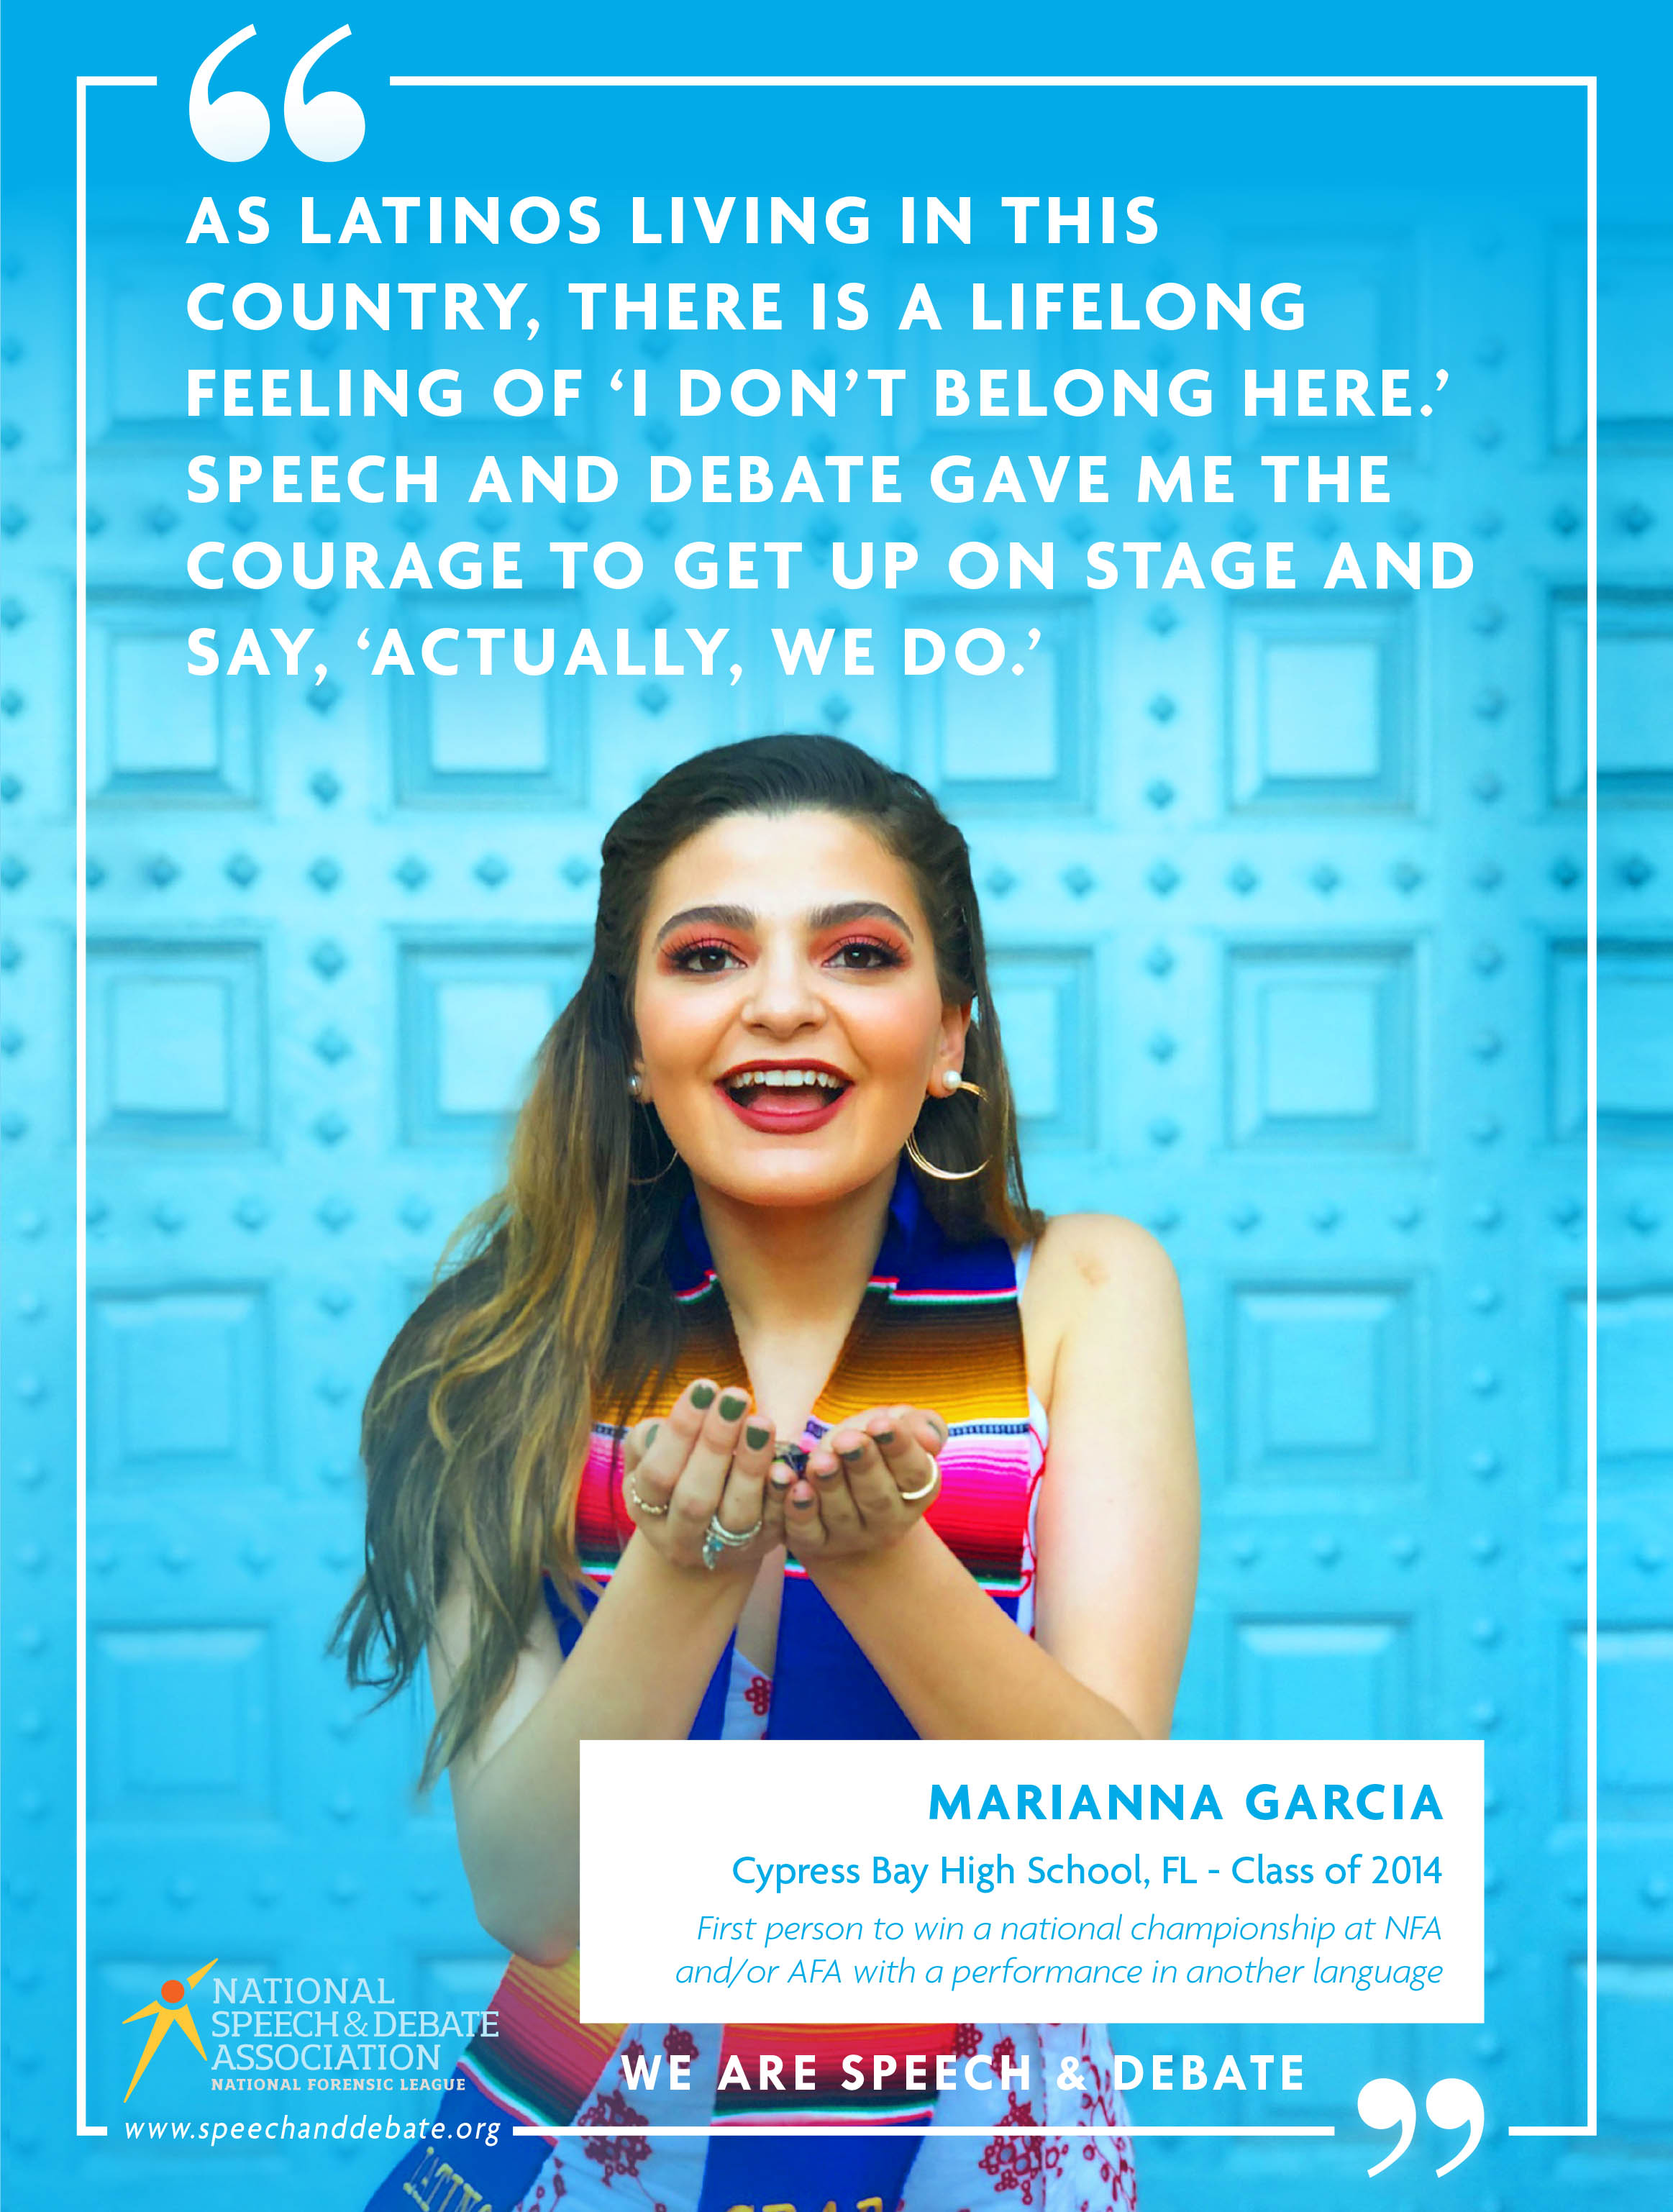 """AS LATINOS LIVING IN THIS COUNTRY, THERE IS A LIFELONG FEELING OF 'I DON'T BELONG HERE.' SPEECH AND DEBATE GAVE ME THE COURAGE TO GET UP ON STAGE AND SAY, 'ACTUALLY, WE DO.'"" - Marianna Garcia"